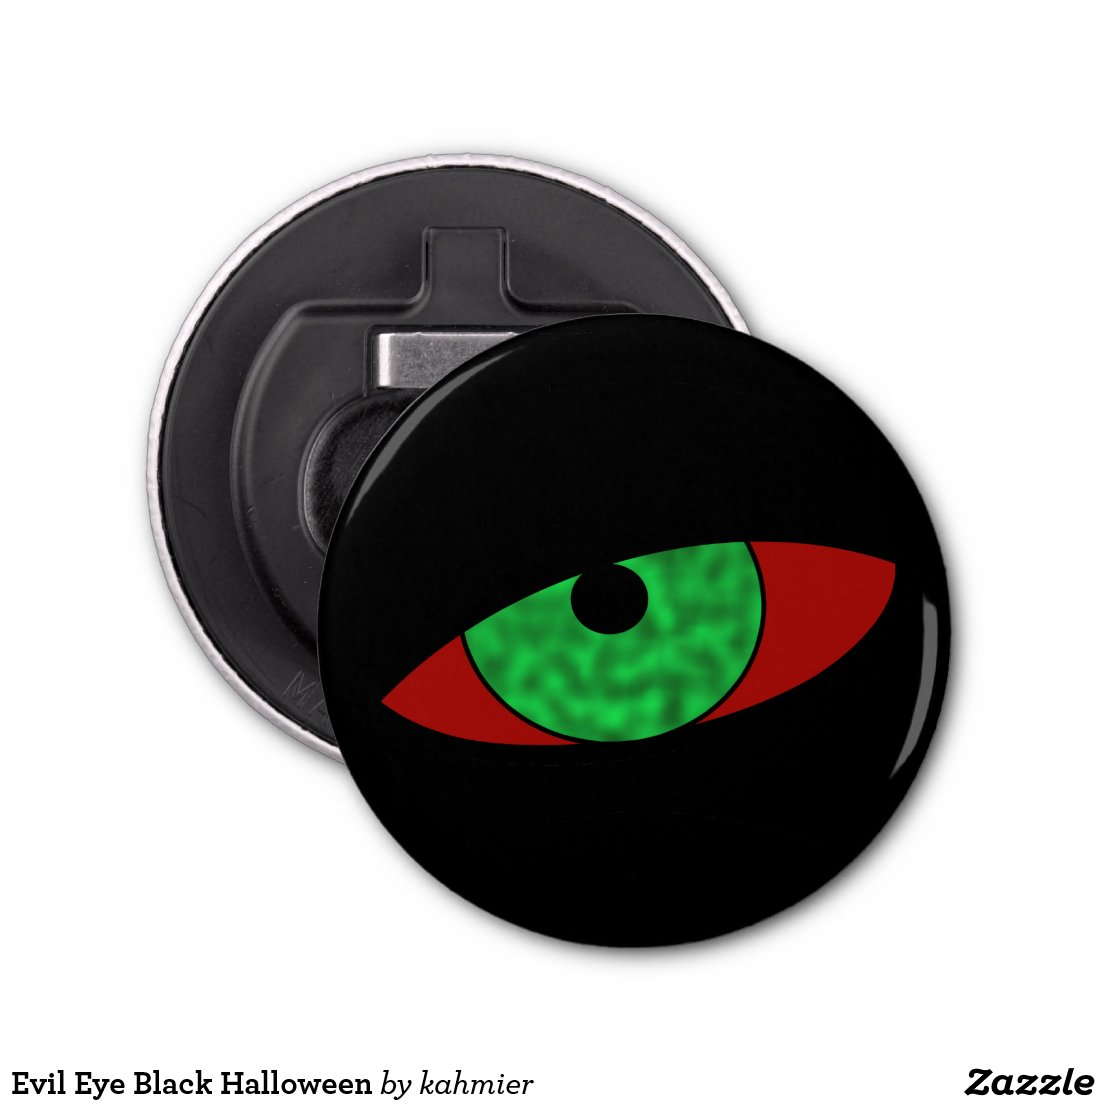 Evil Eye Black Halloween Bottle Opener